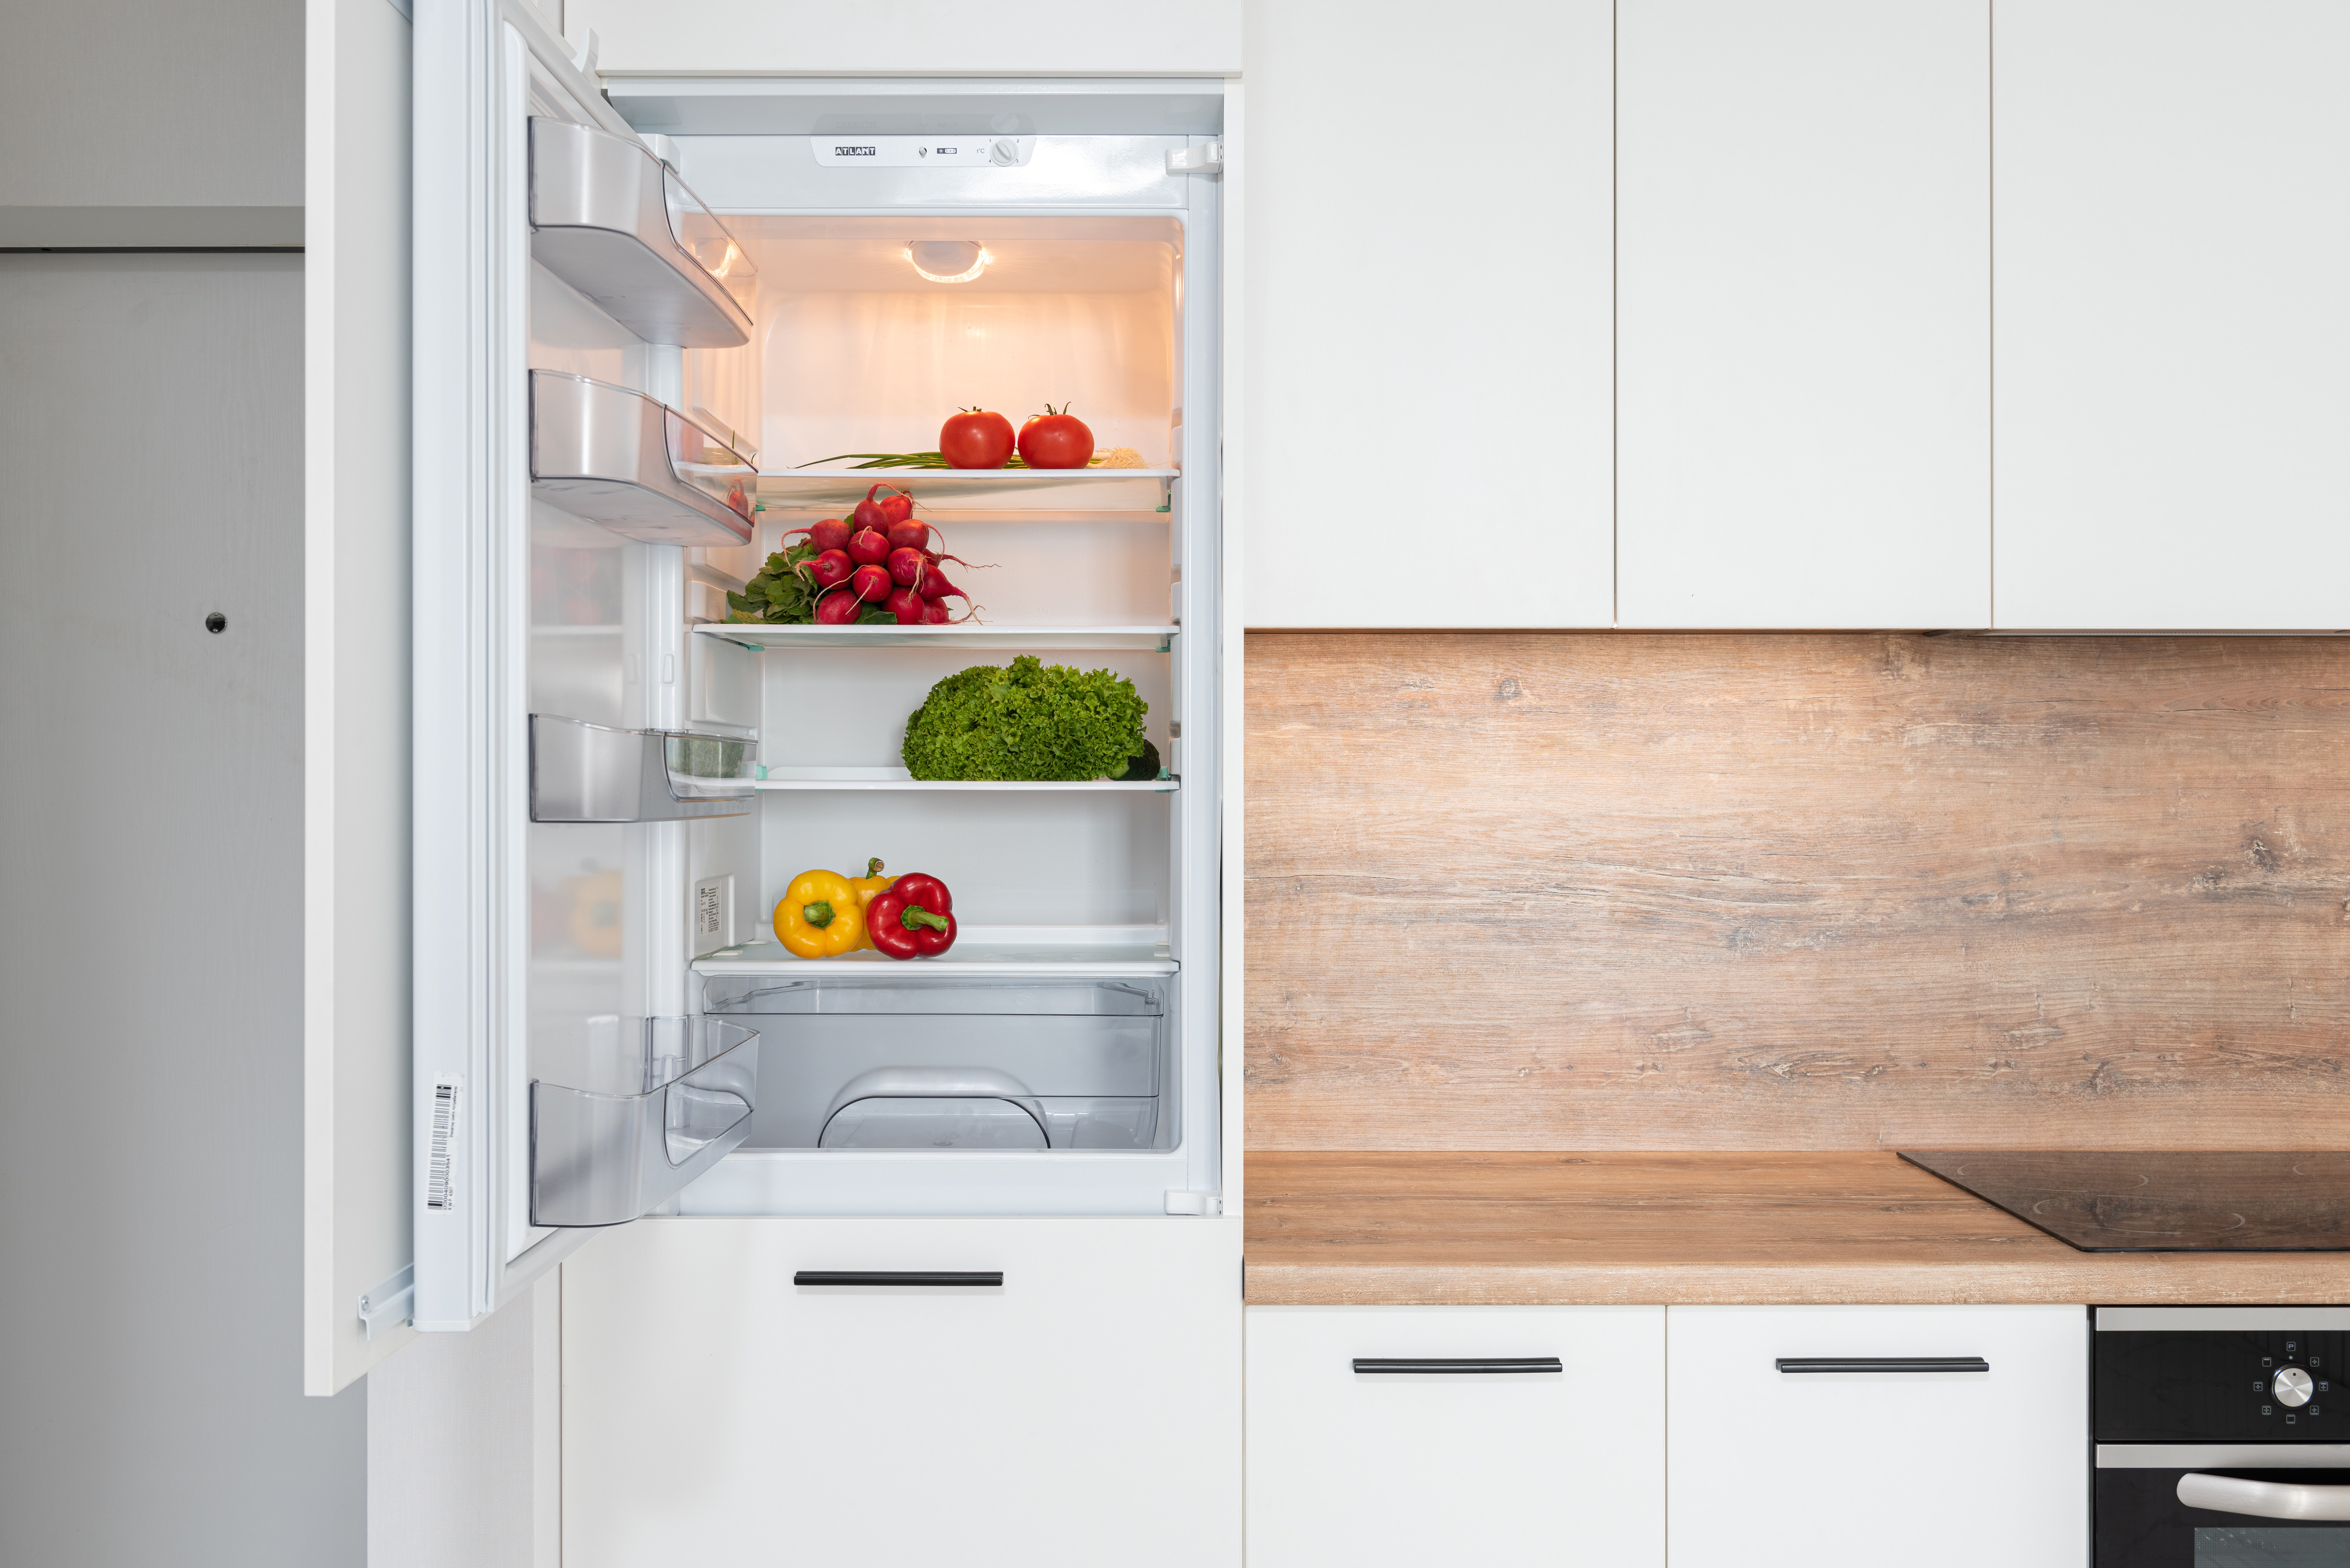 How to Organize Your Refrigerator Like a Professional